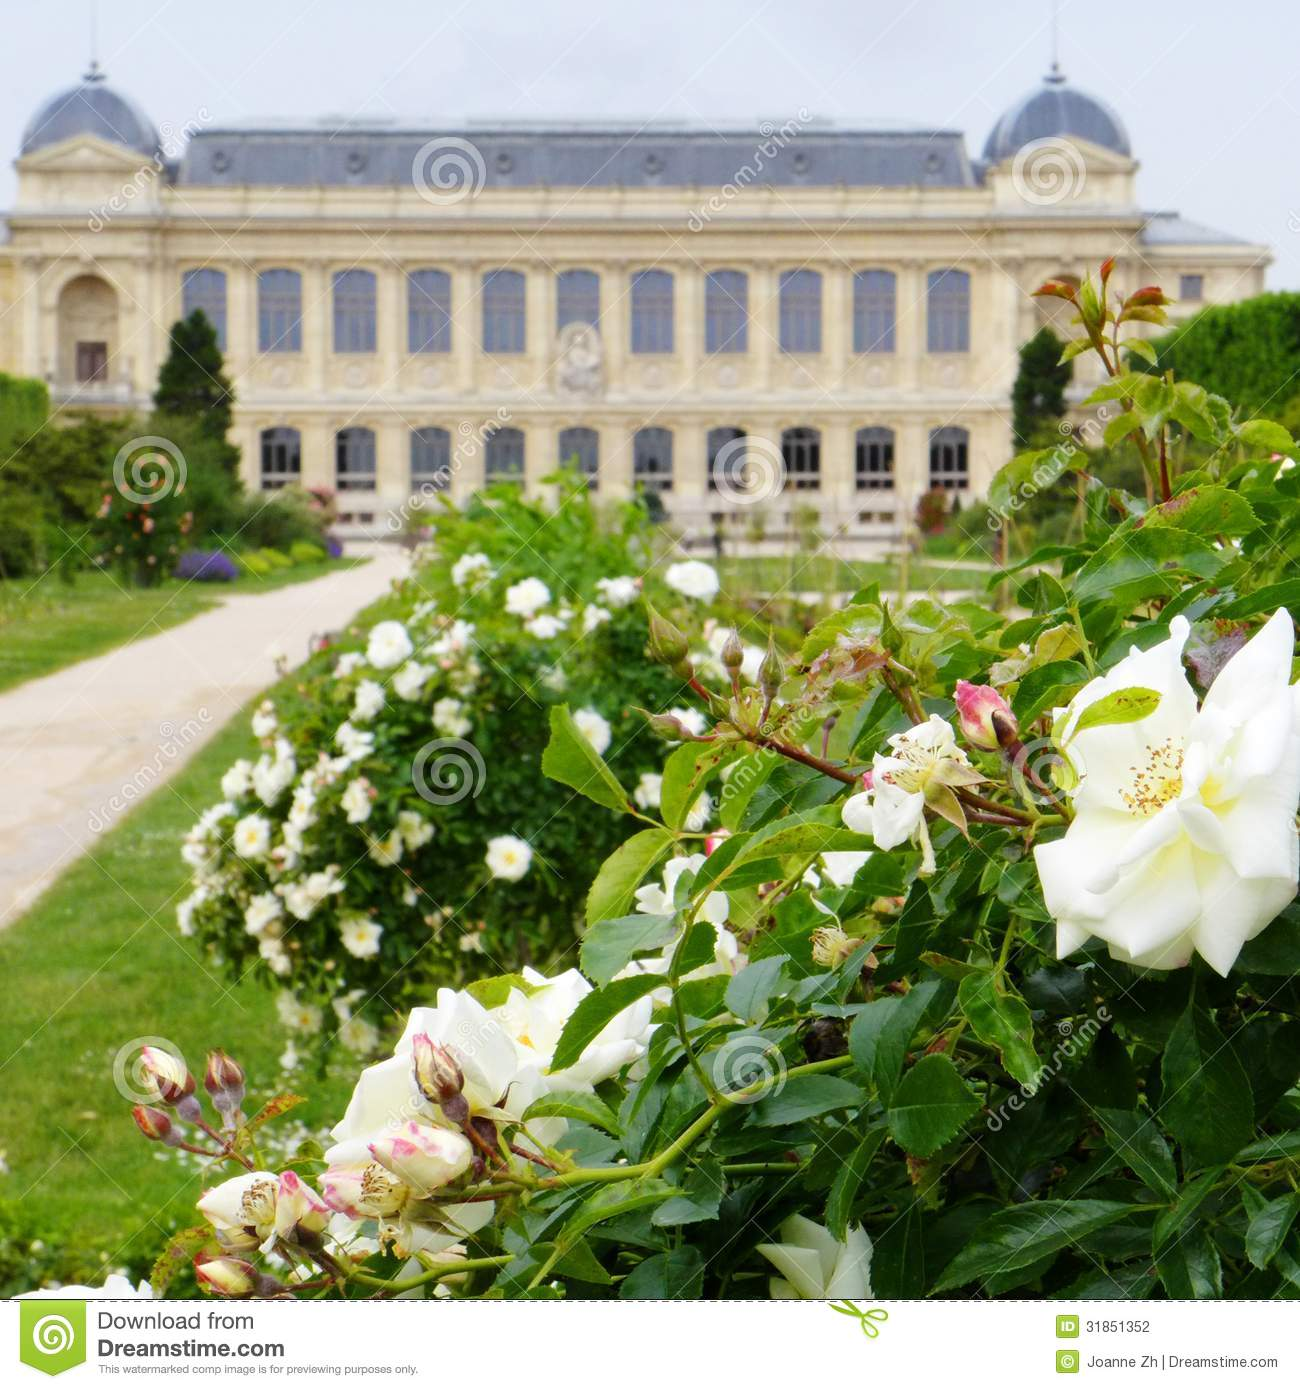 Jardin des plantes paris france stock photo image 31851352 - Nenette jardin des plantes ...